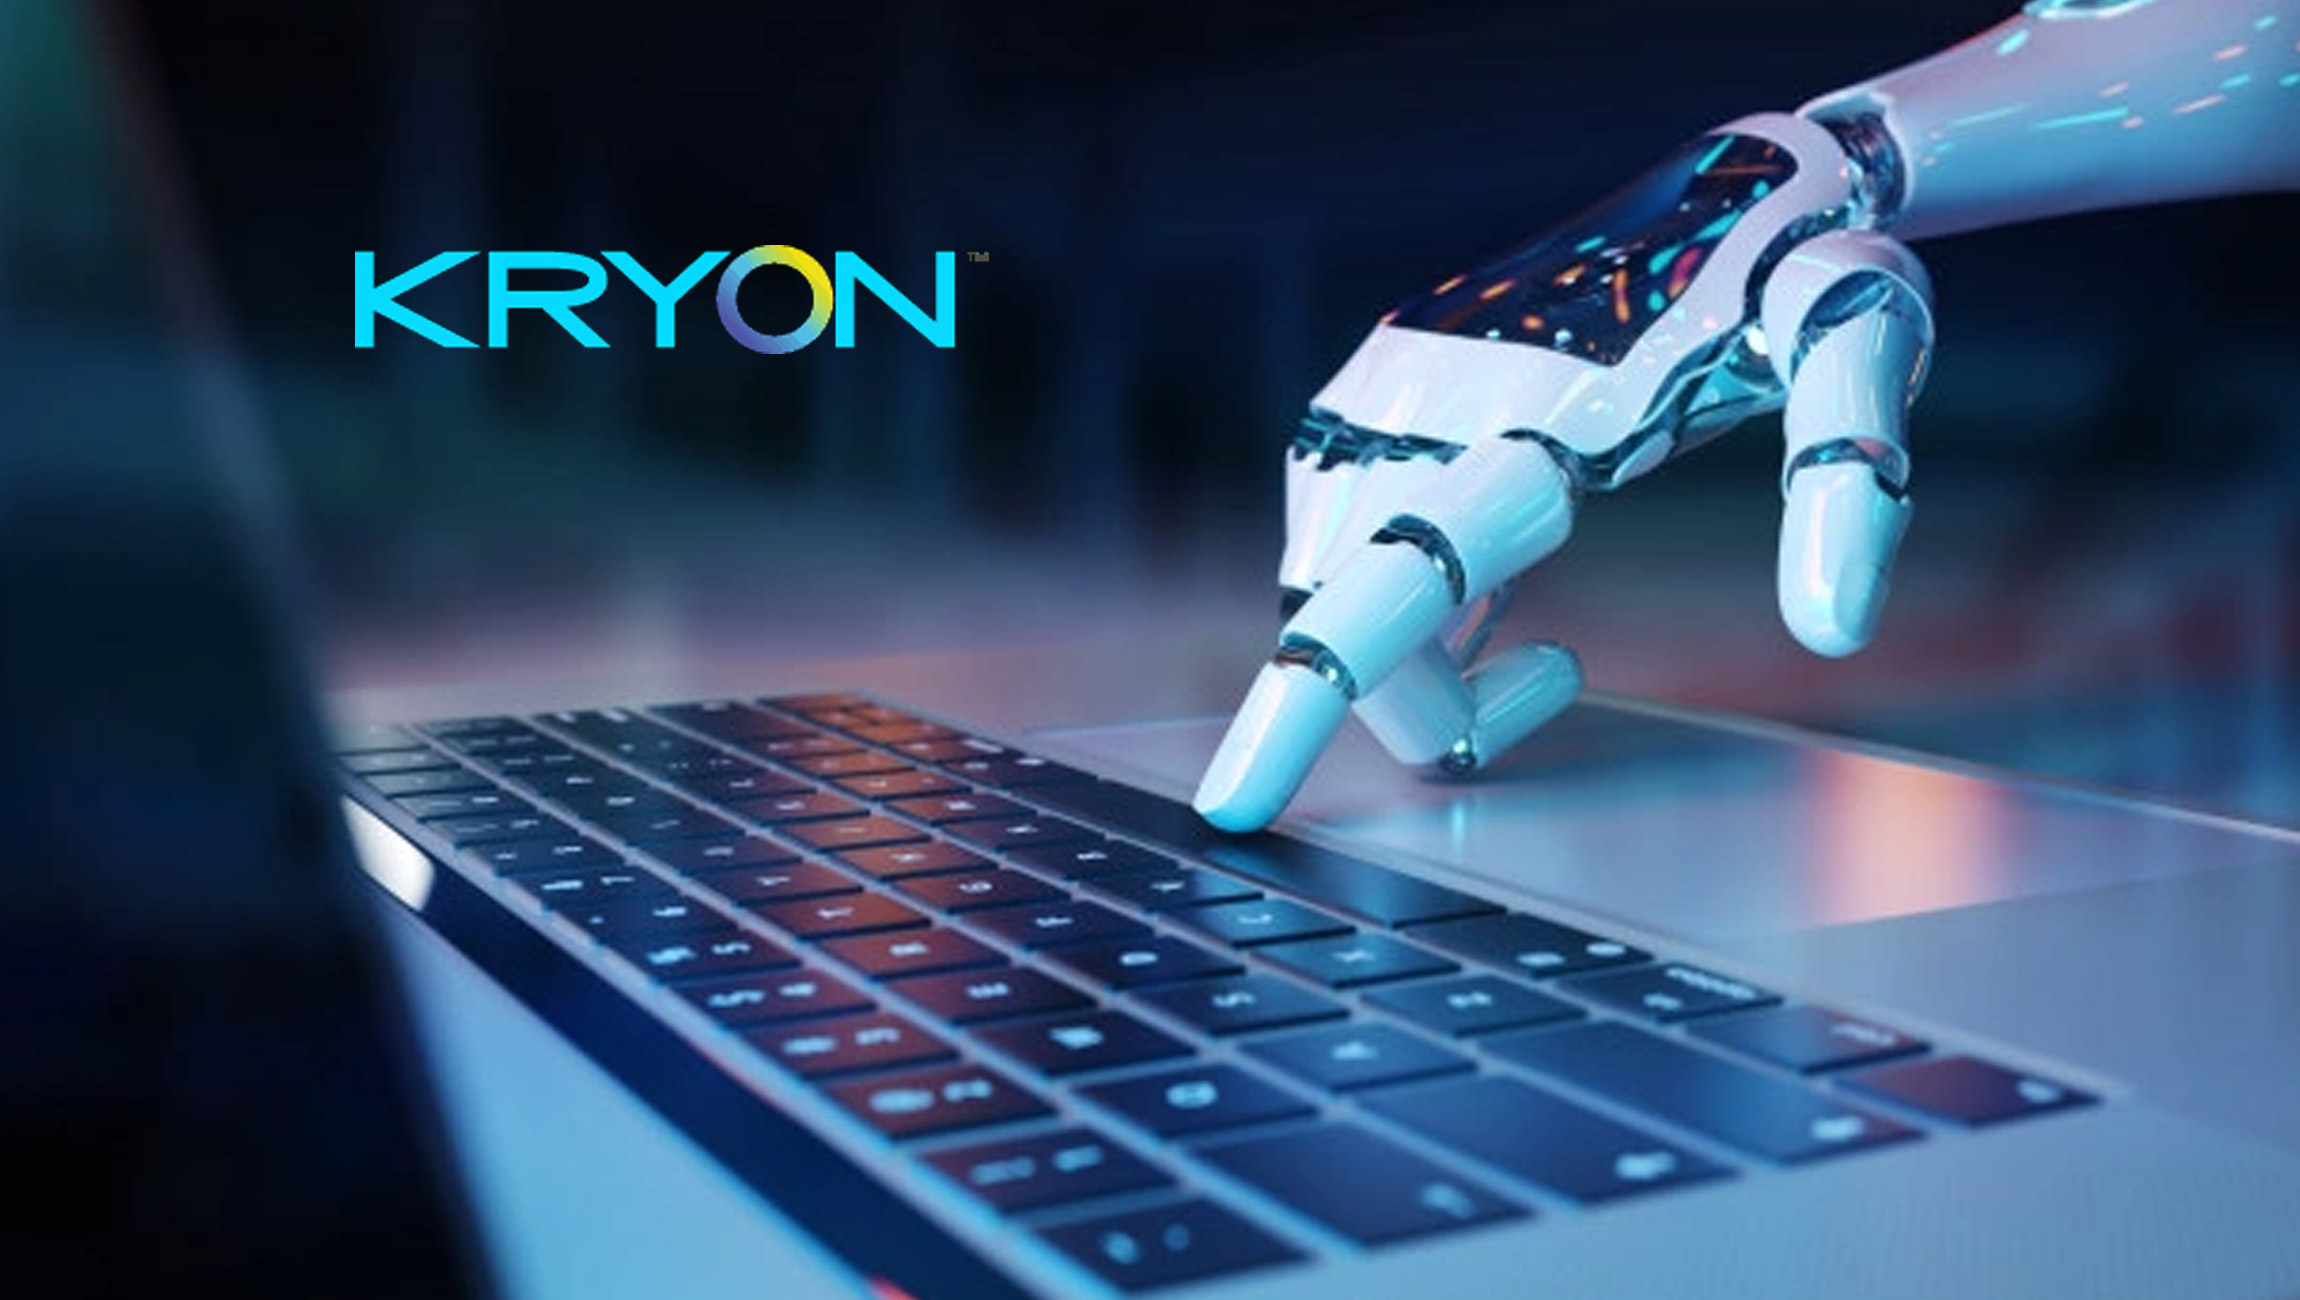 Kryon 'Automation Expedition' Global Summit Explores How Process Discovery and RPA Helps Businesses Reach New Heights